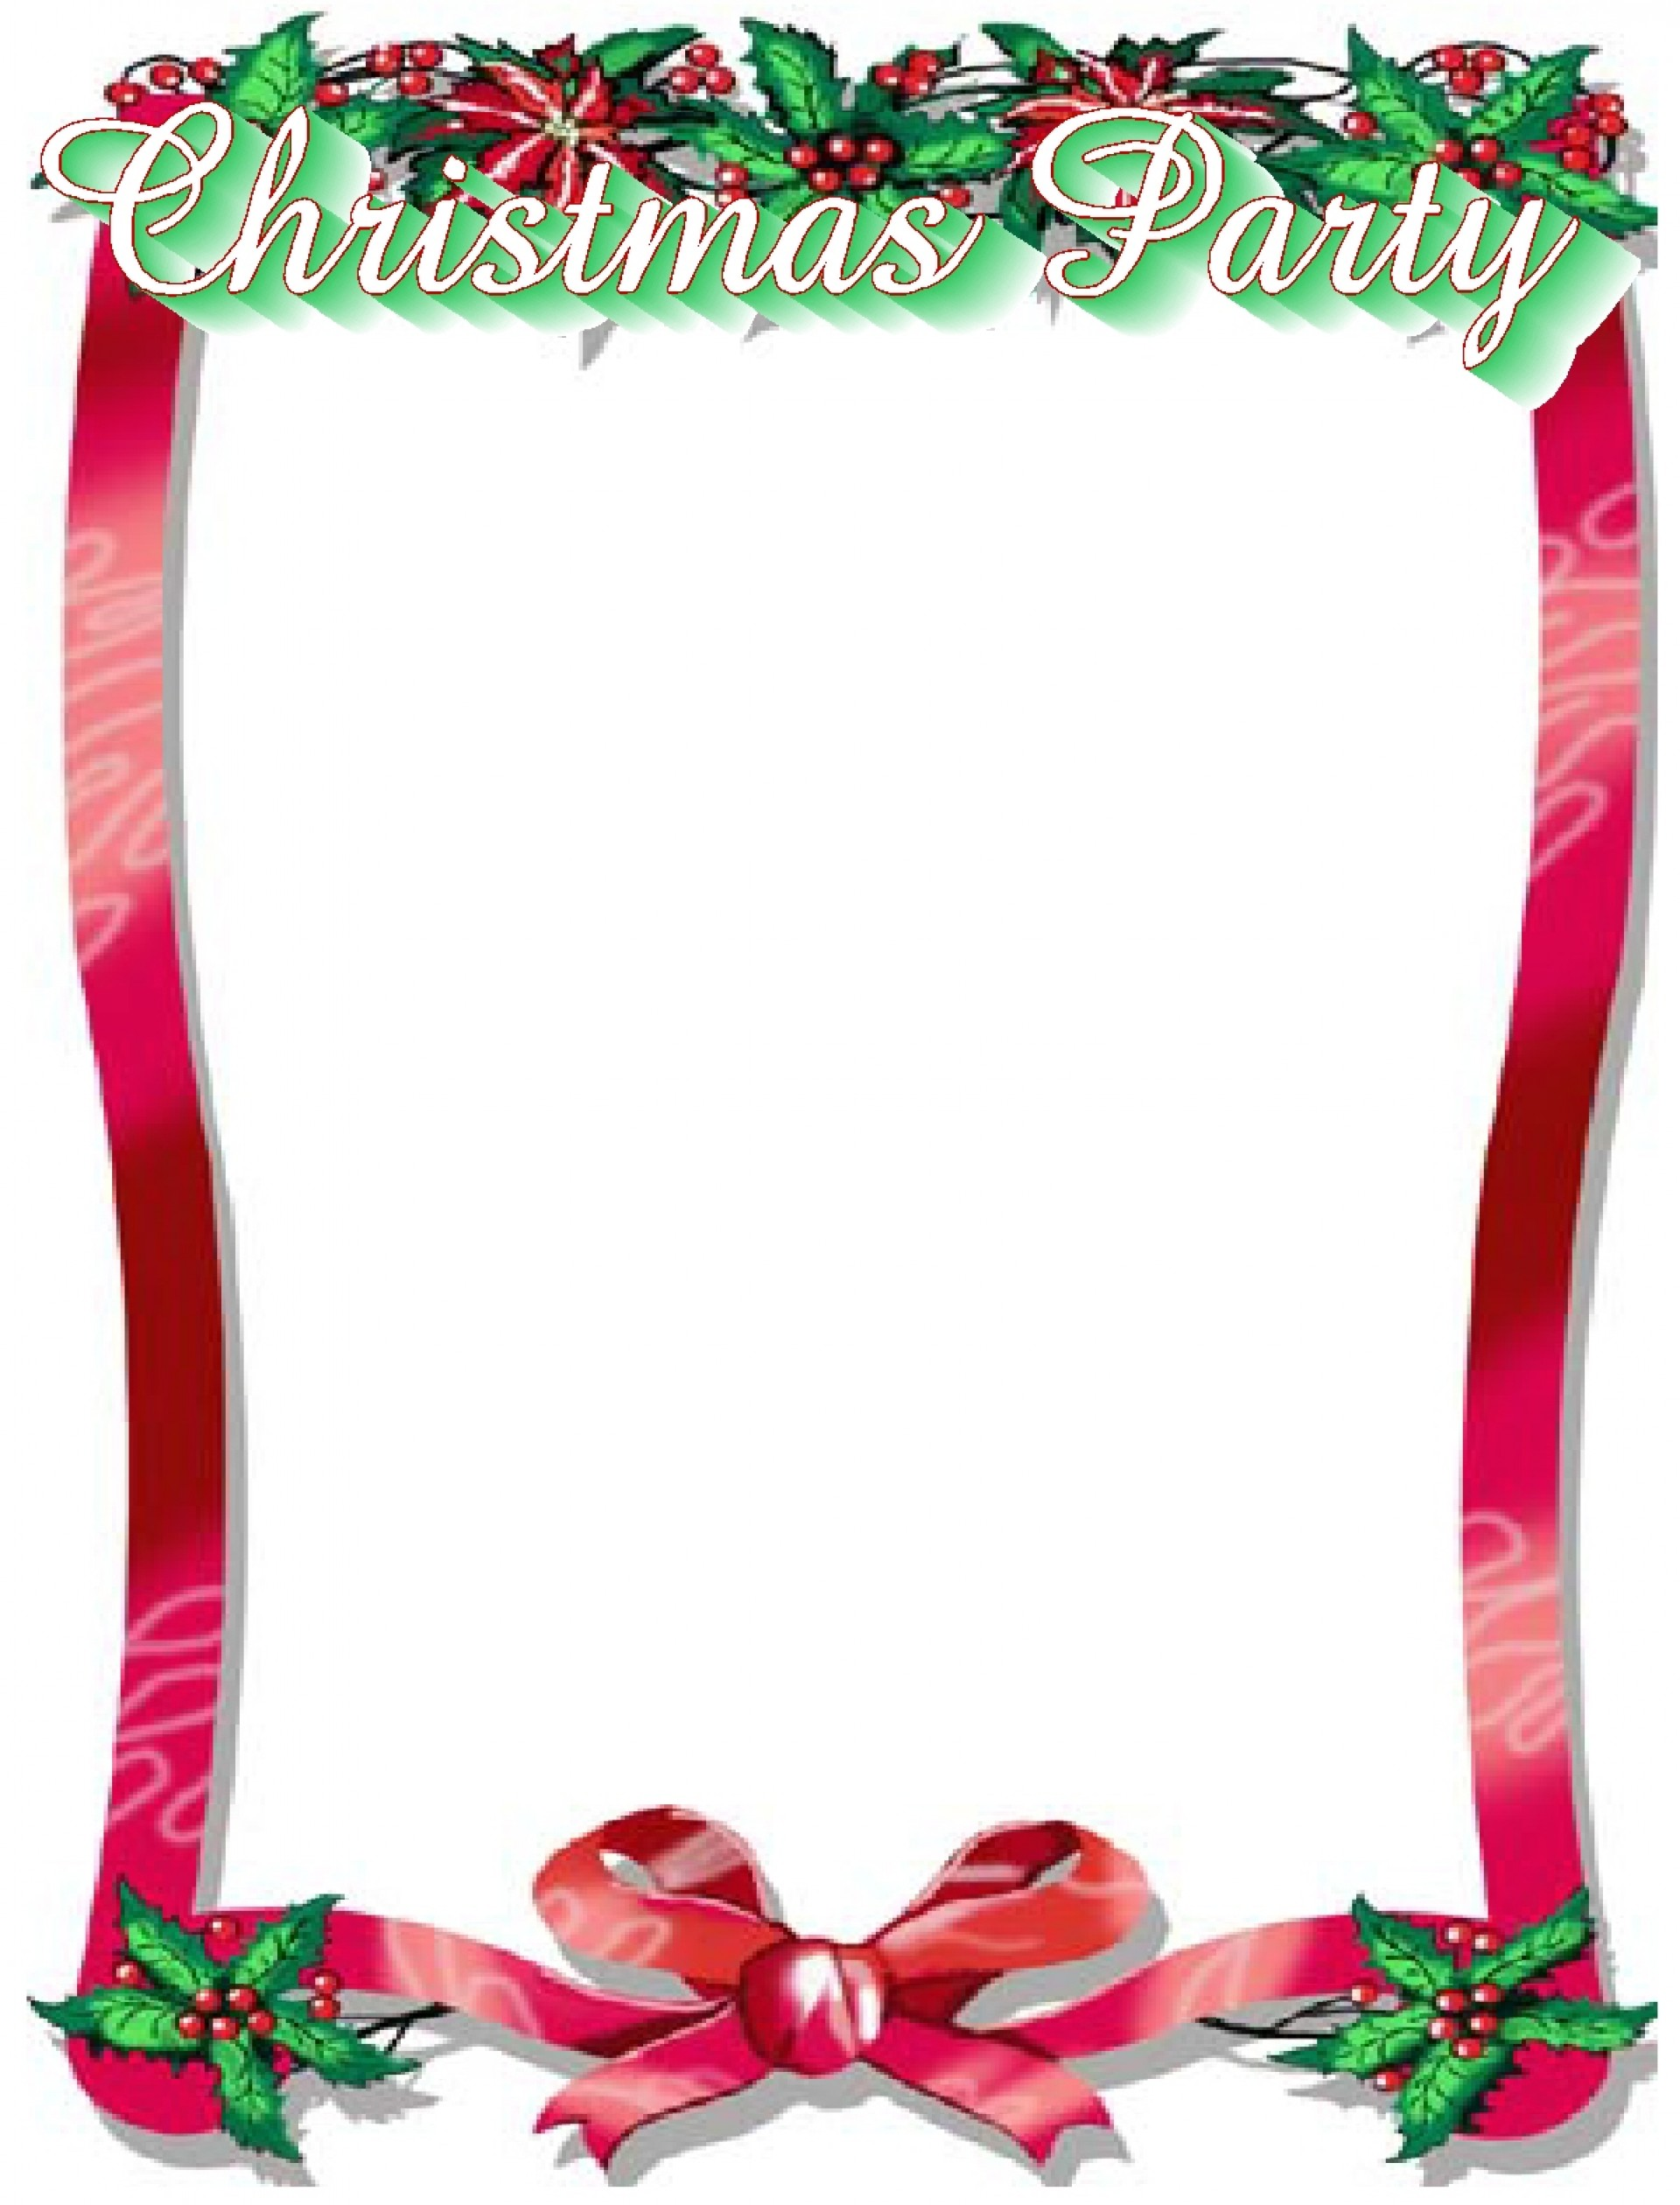 Free Word Downloadable Christmas Flyer Template